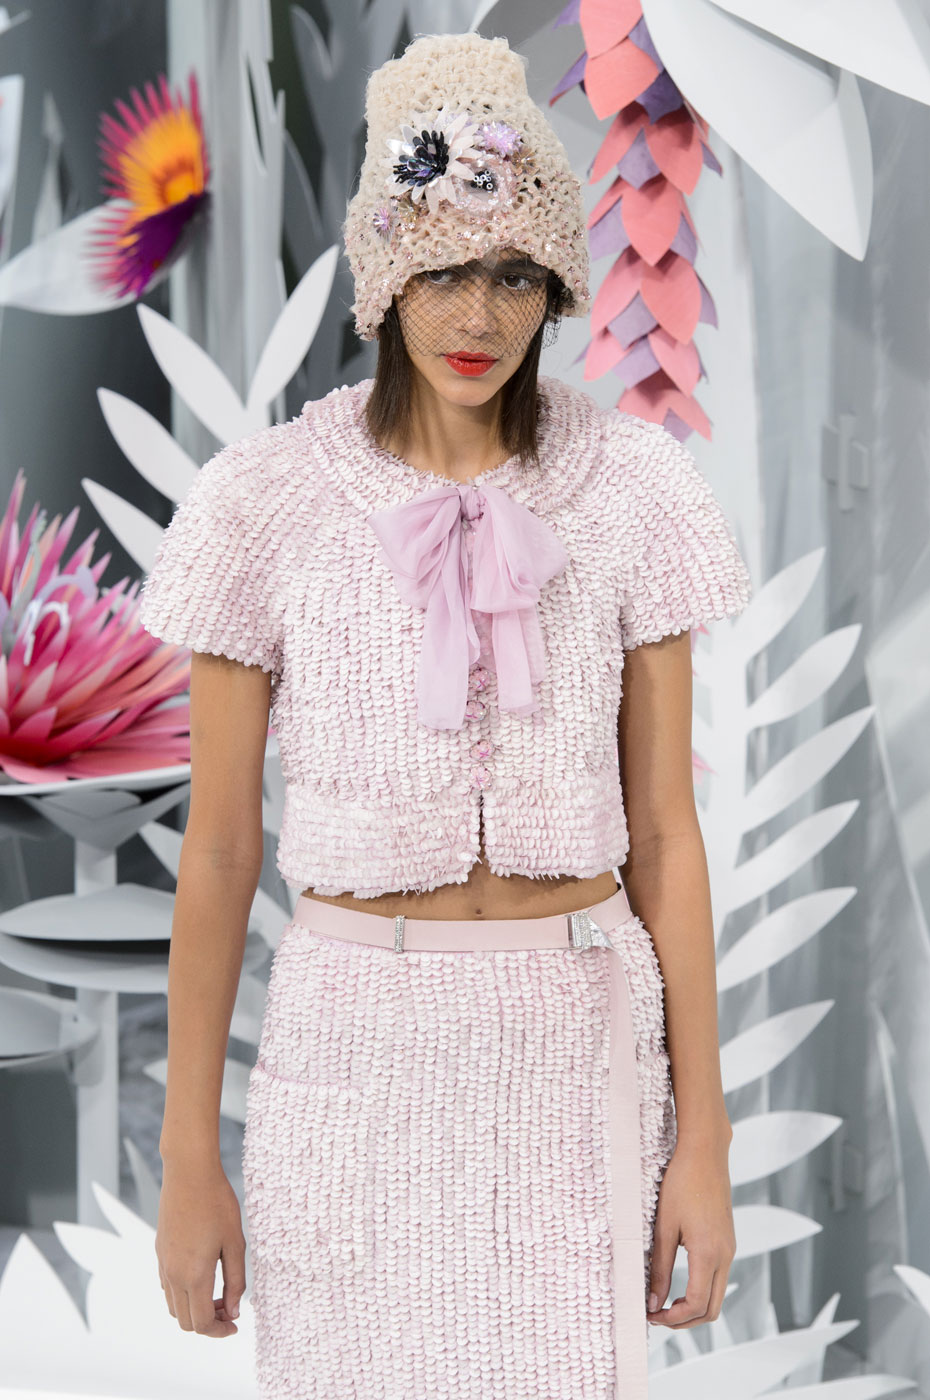 Chanel-fashion-runway-show-haute-couture-paris-spring-summer-2015-the-impression-122